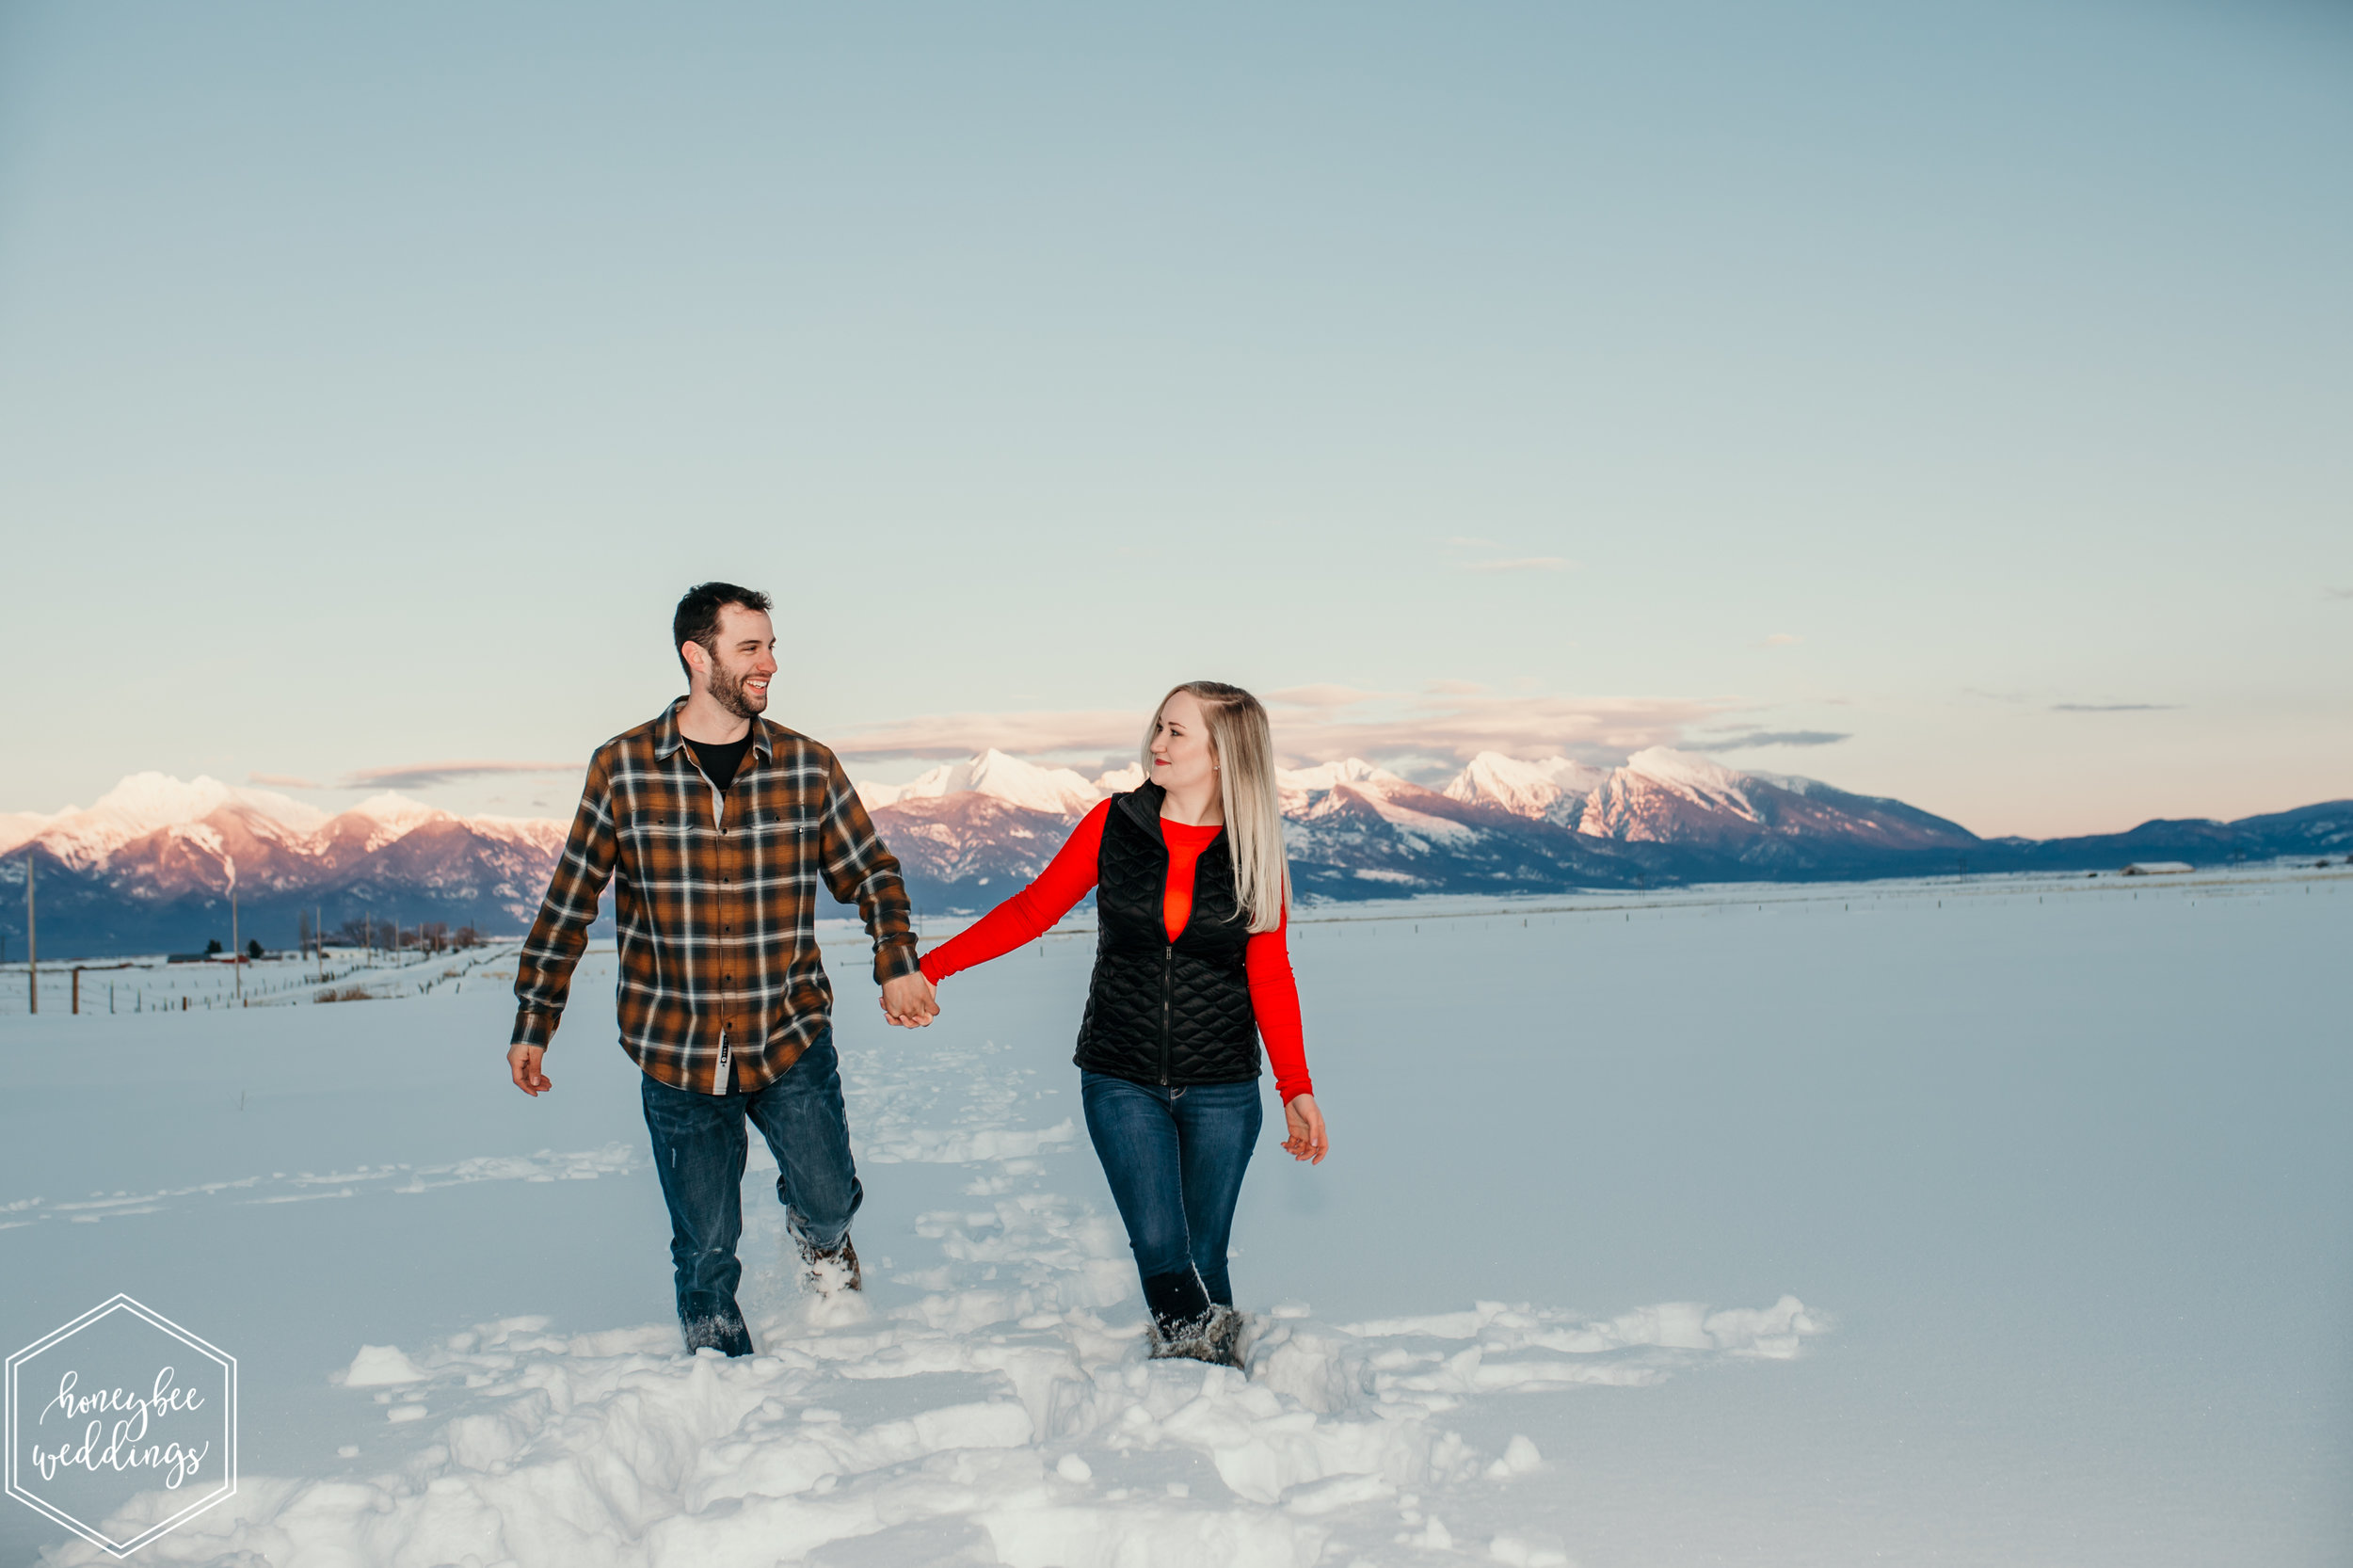 089Montana Wedding Photographer_Winter Engagement_Polson_Jessica & Brian_March 09, 2019-413.jpg